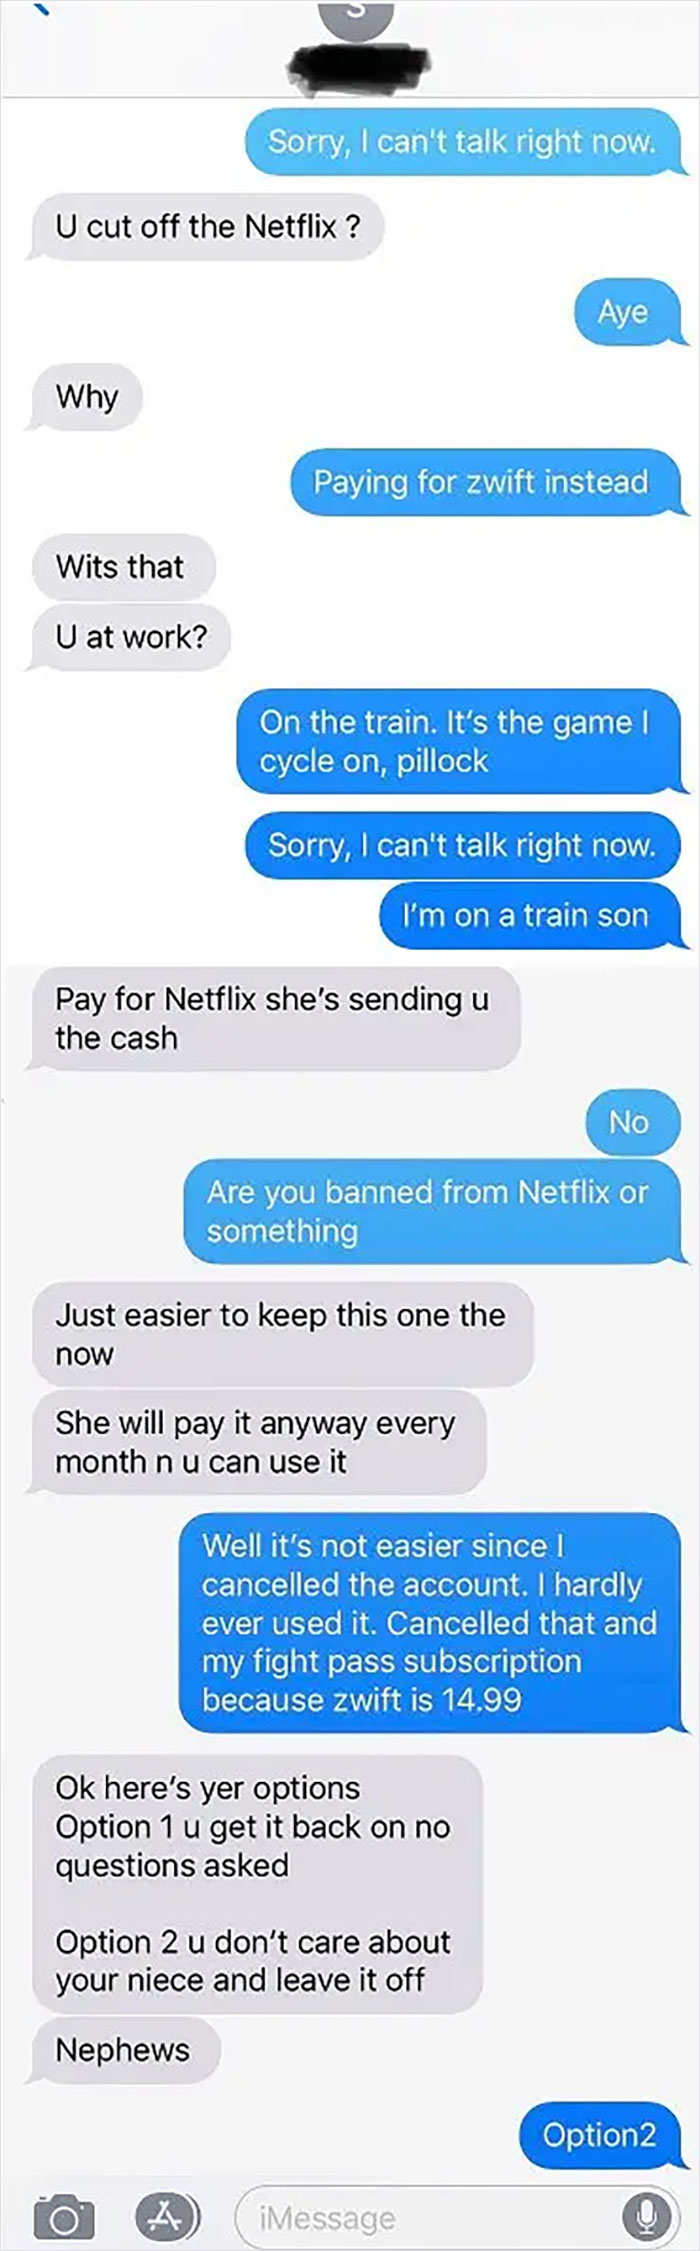 Brother Who Refuses To Work Tries To Emotionally Blackmail Me Over Netflix Subscription